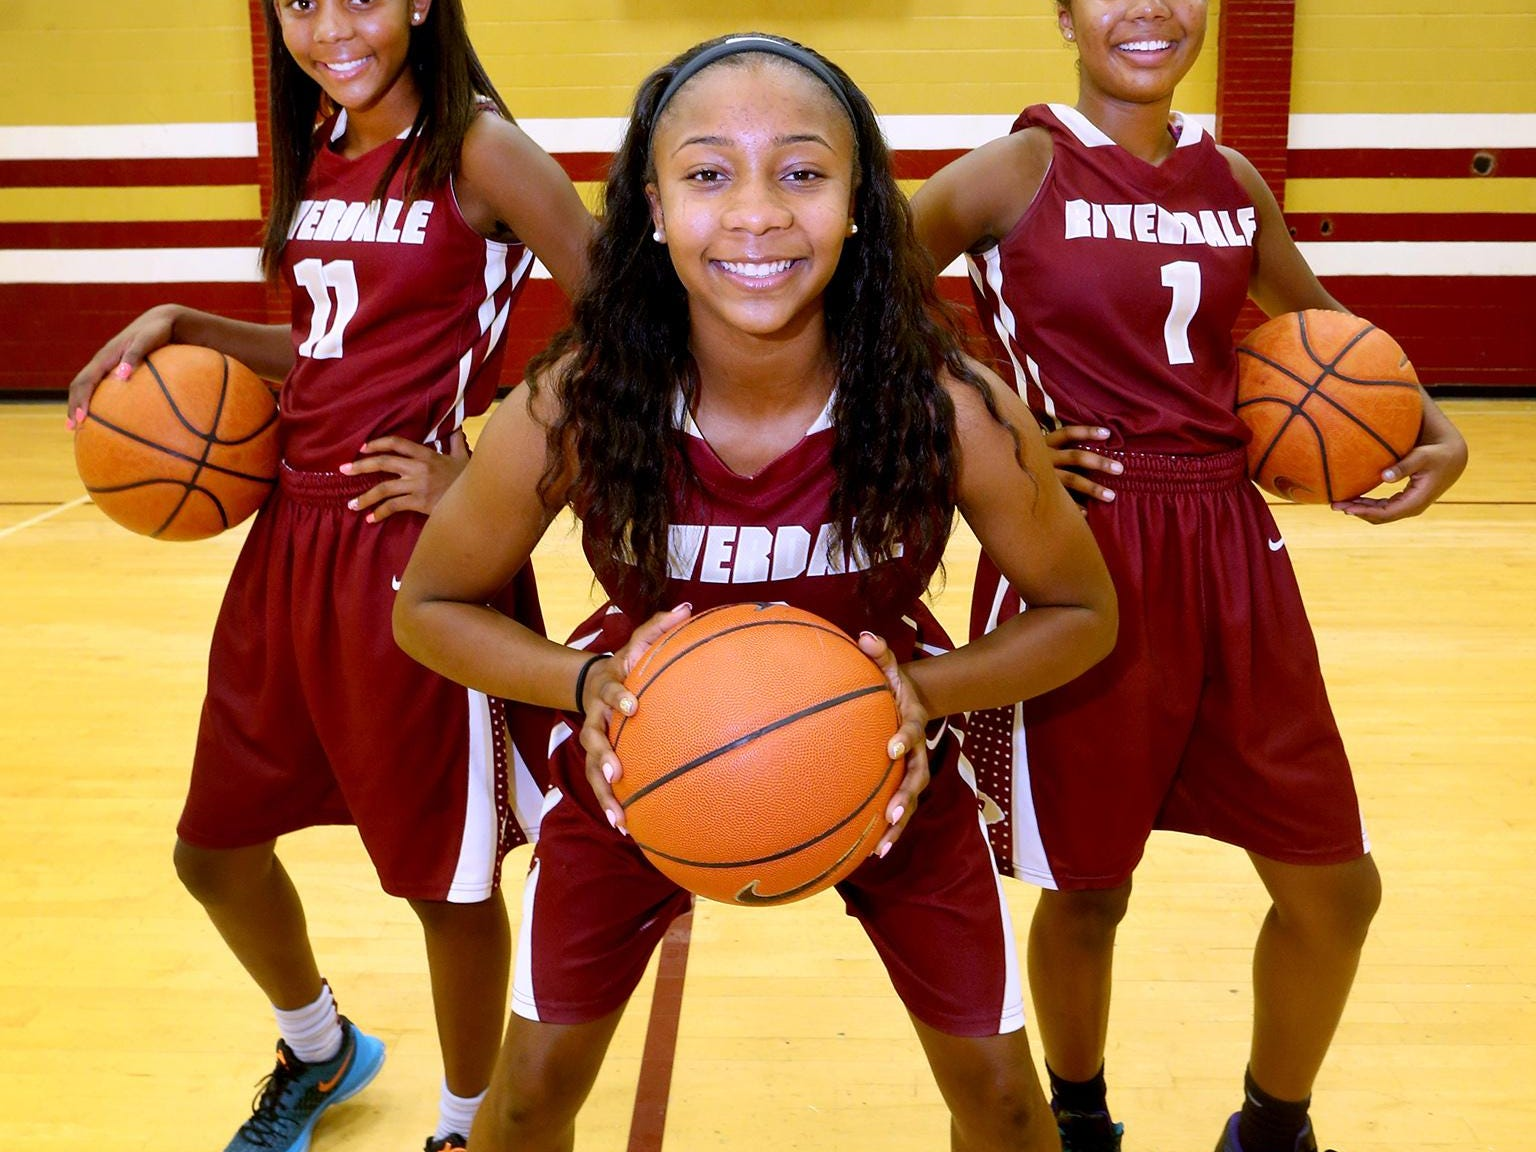 The Hayes sisters (L to R) Aislynn Hayes, Sophomore at Riverdale, Anastasia Hayes, Senior at Riverdale, on Thursay, Aug. 11, 2016.